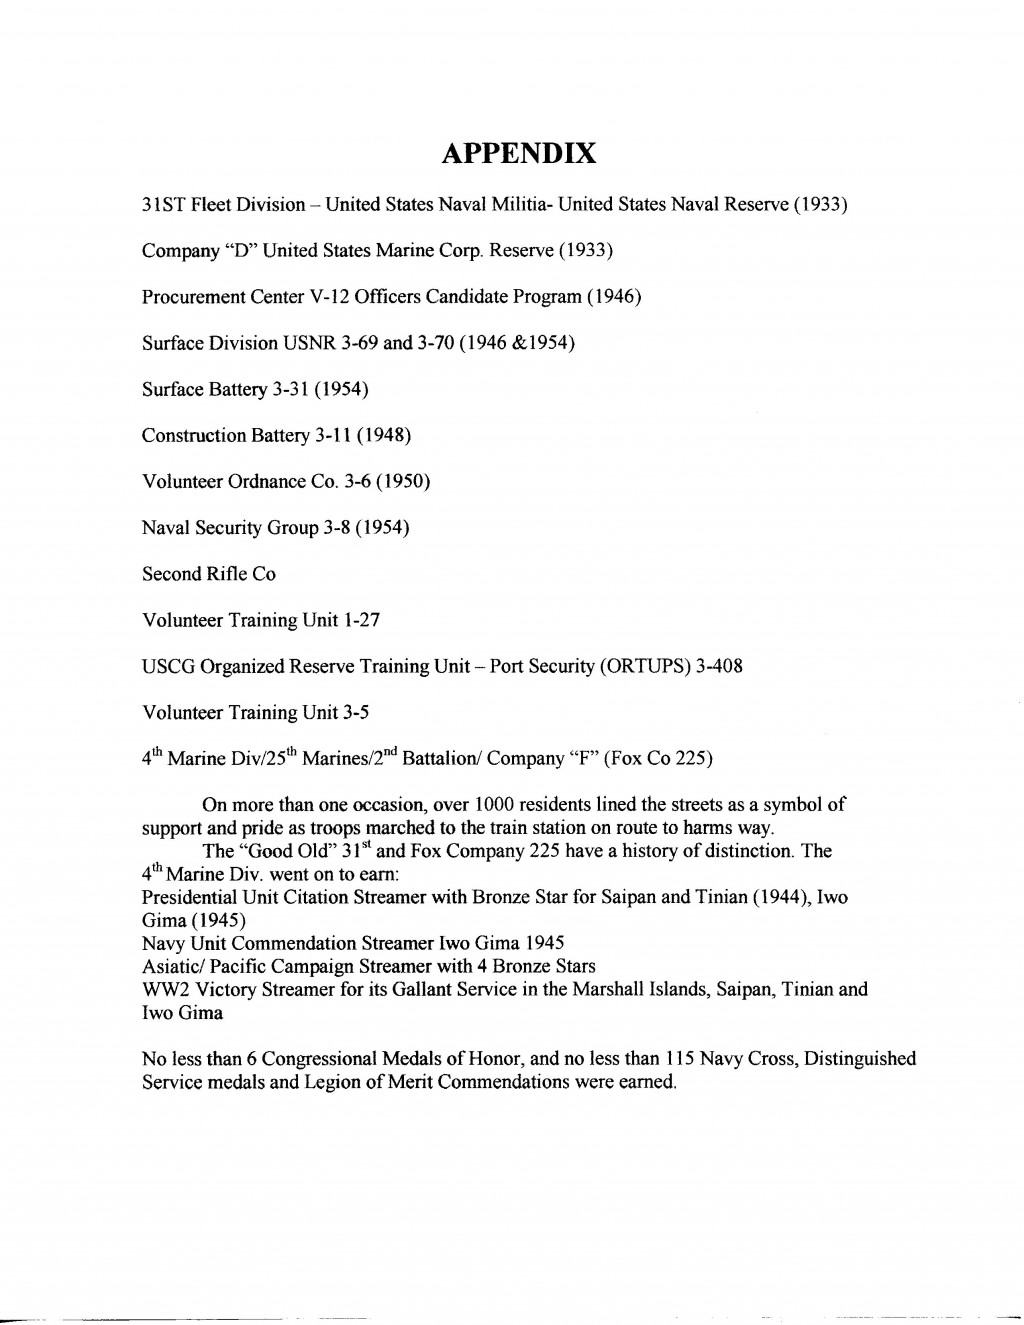 008 Njhs Essay Help Example National Junior Honor Society Cove Examples Amazing Character Large